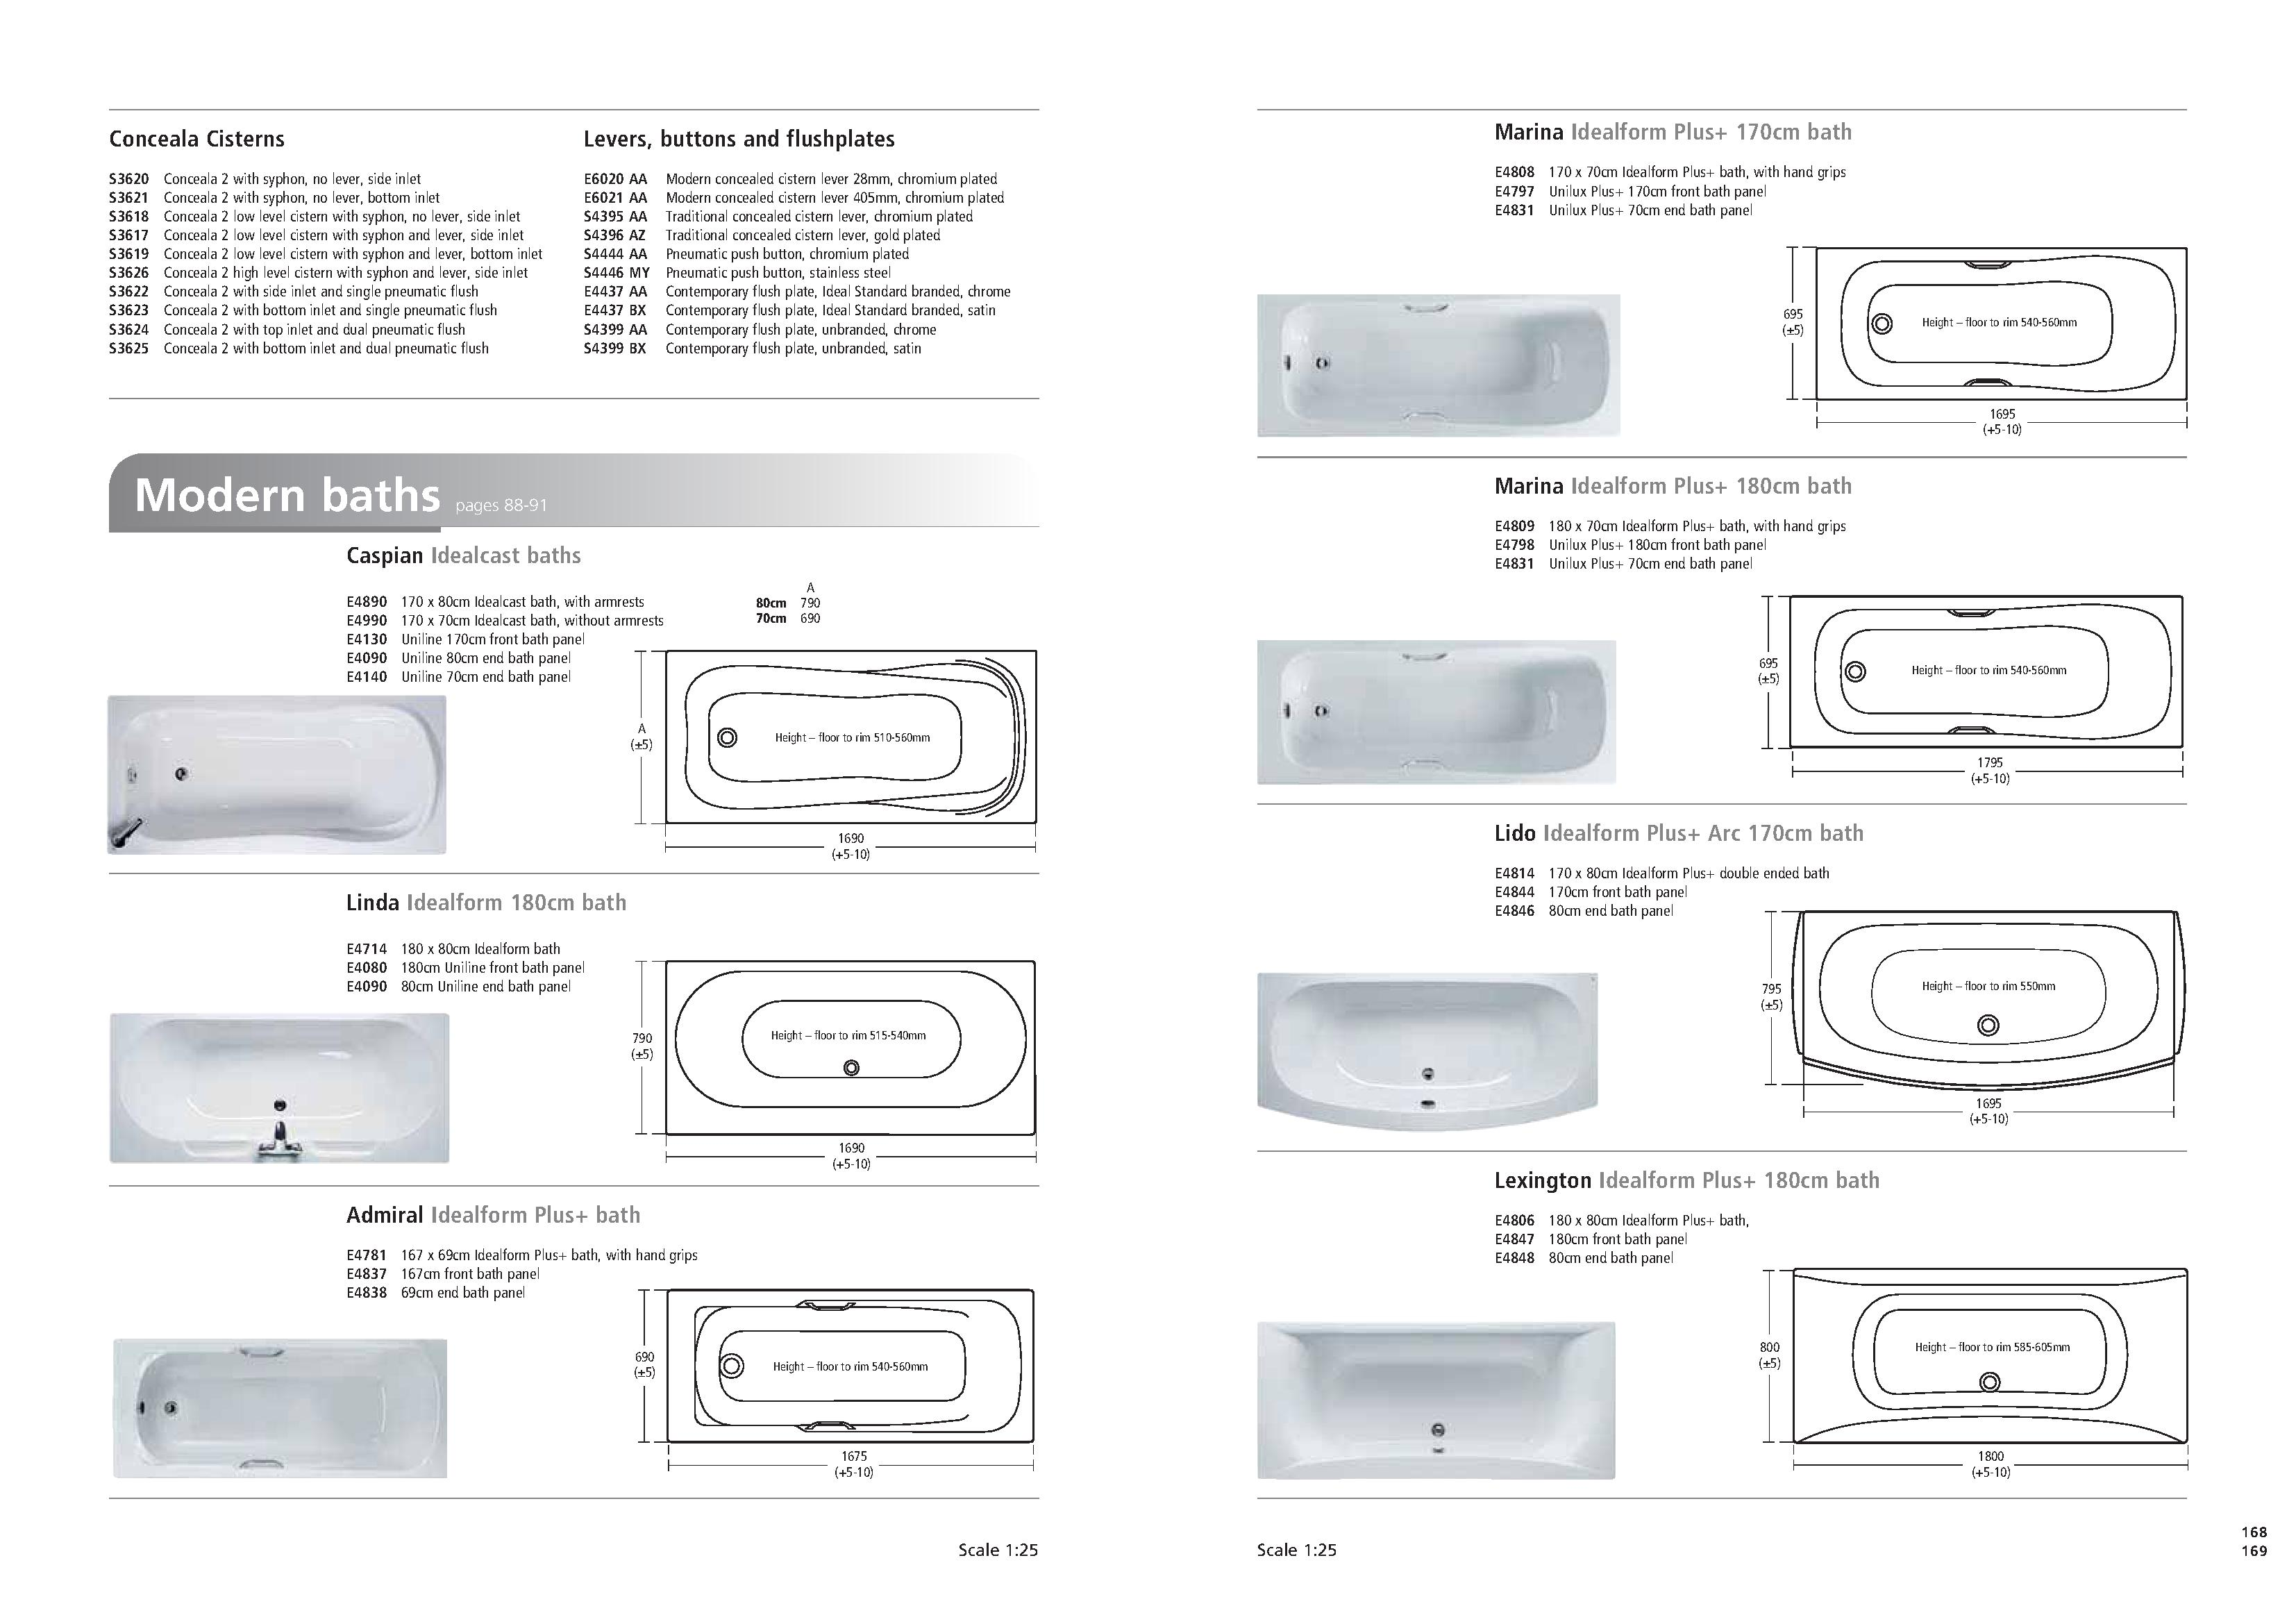 Conceala Single Flush Cistern Pneumatic PDF